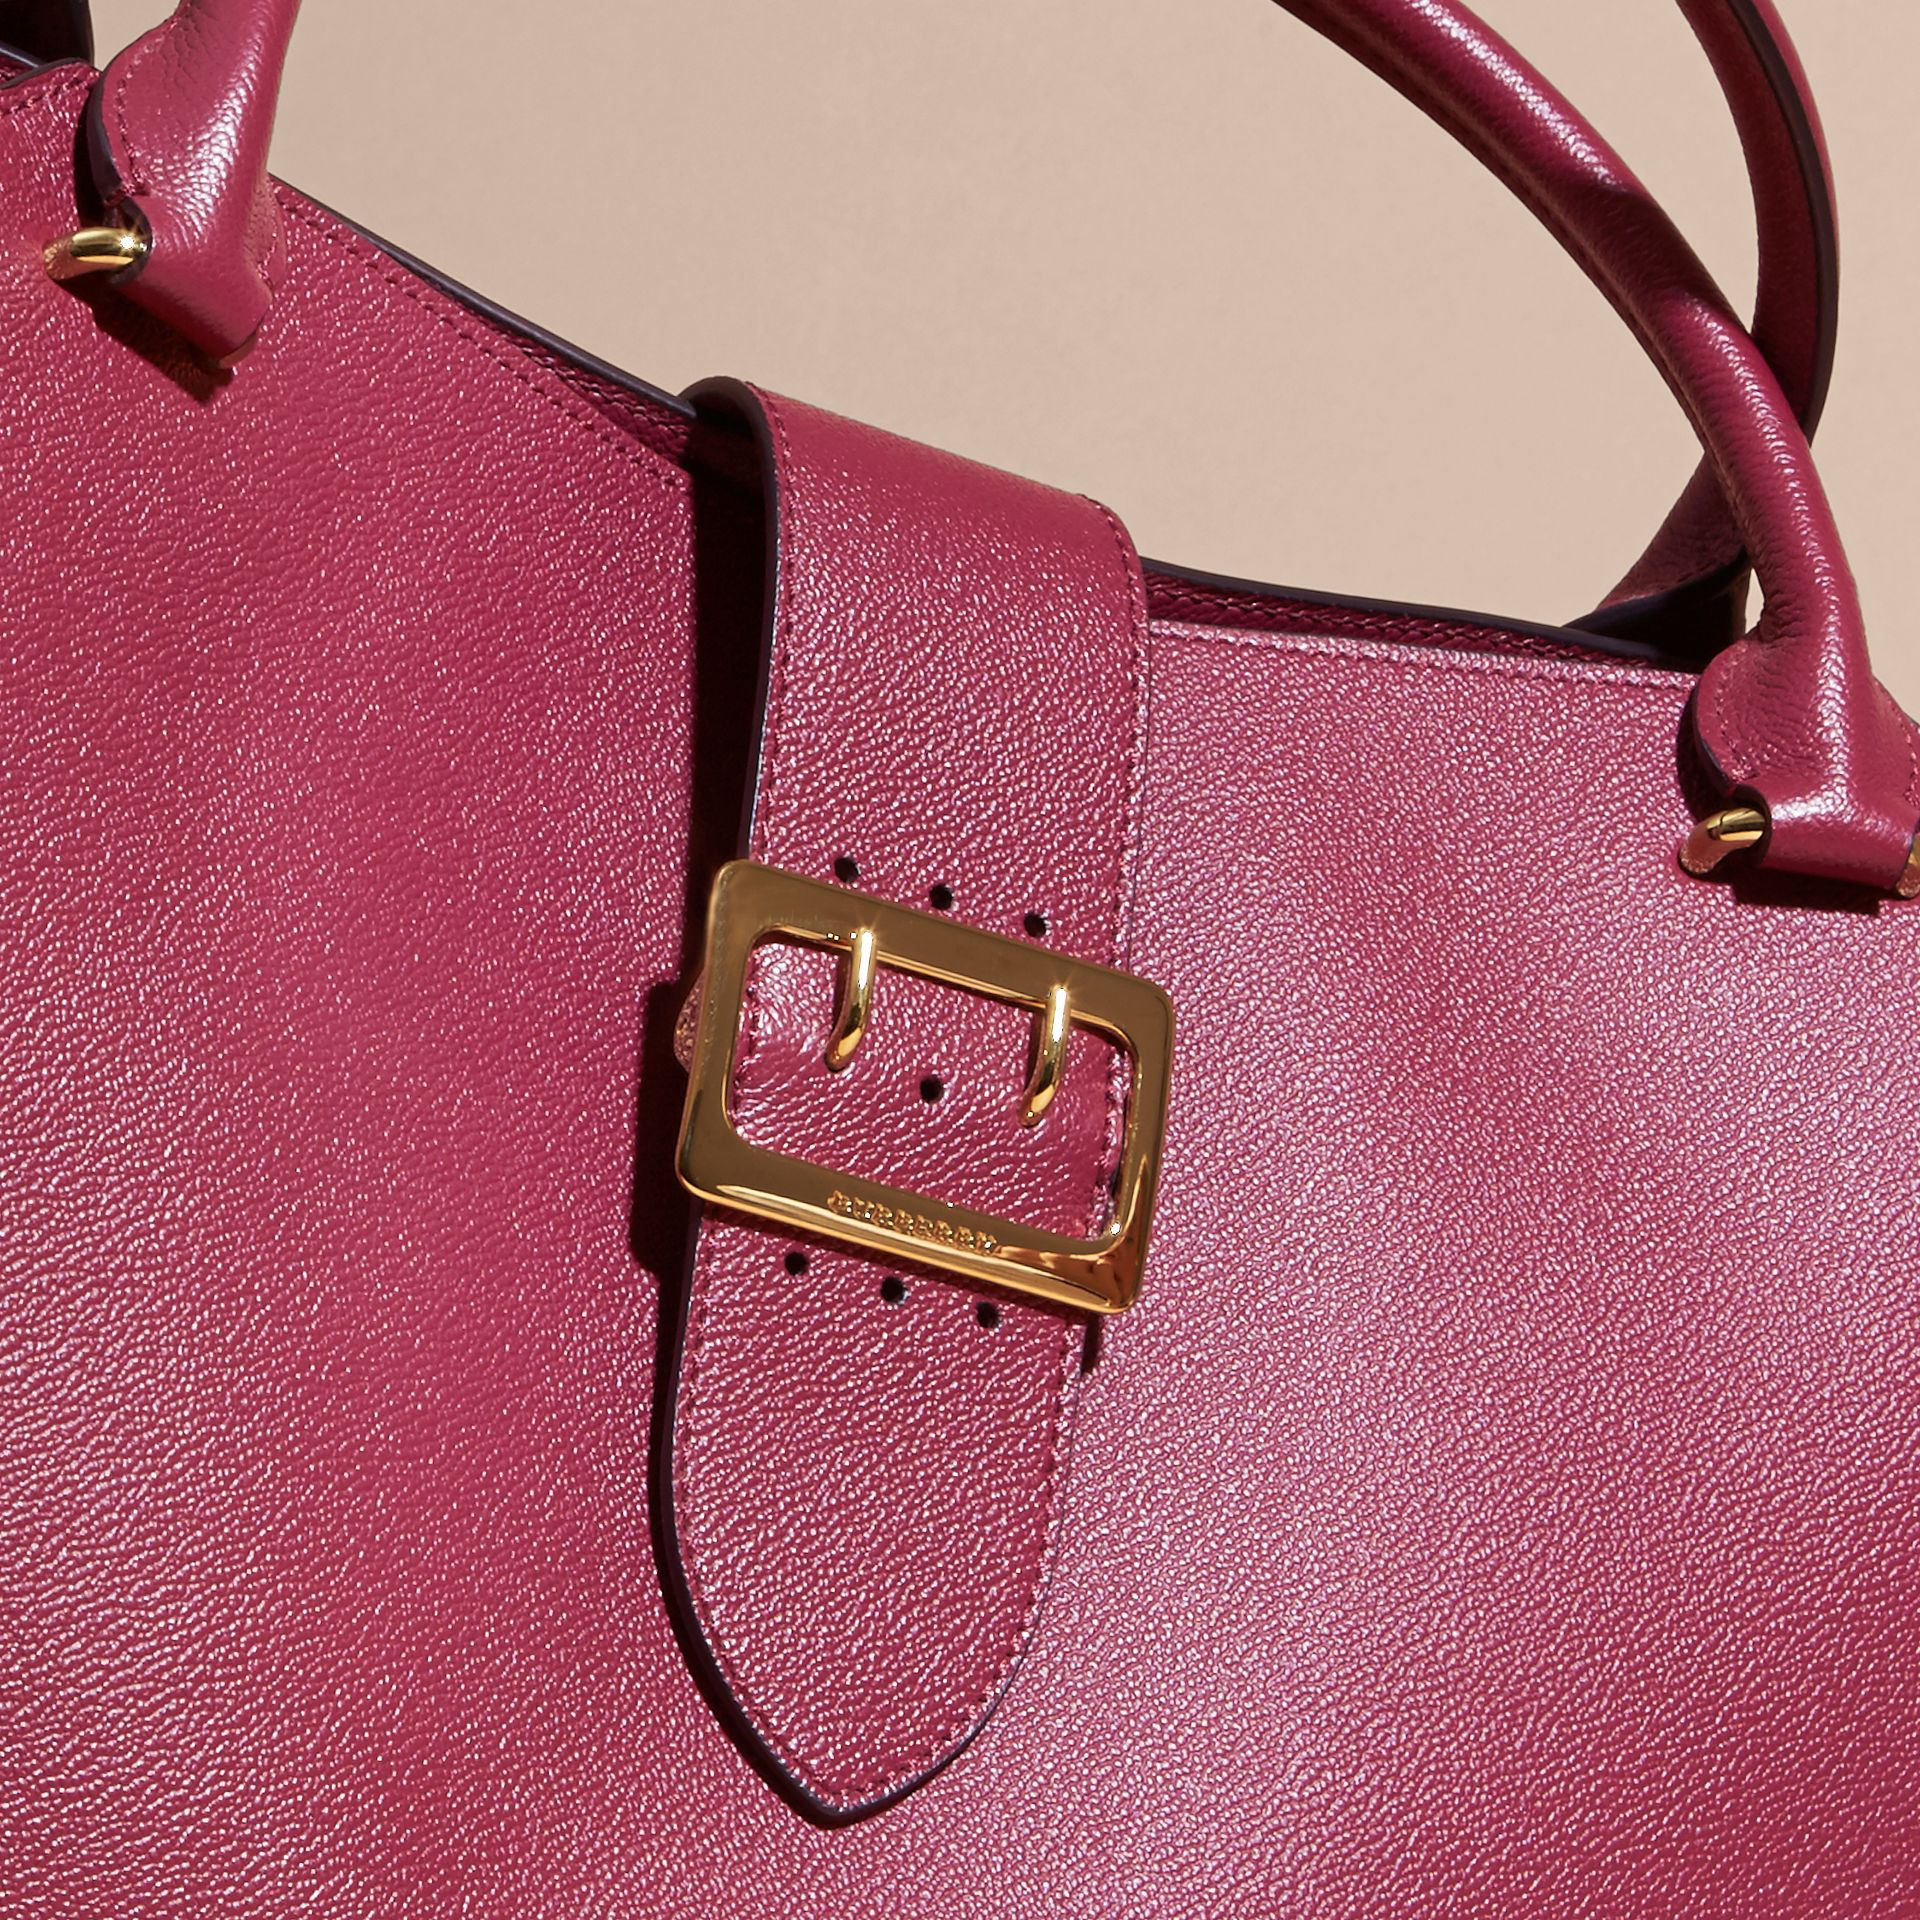 The Large Buckle Tote in Grainy Leather in Dark Plum - Women | Burberry - gallery image 2